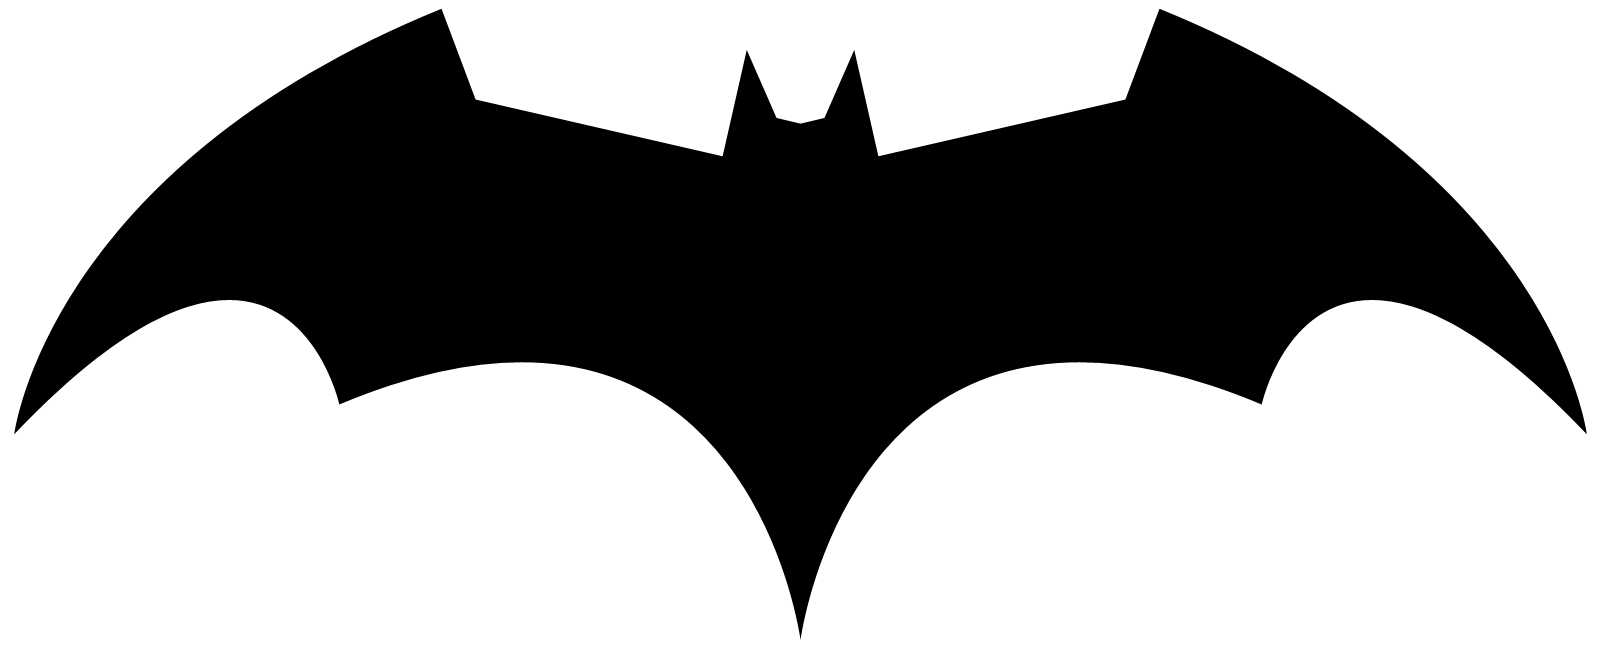 batman logo png transparent 2059